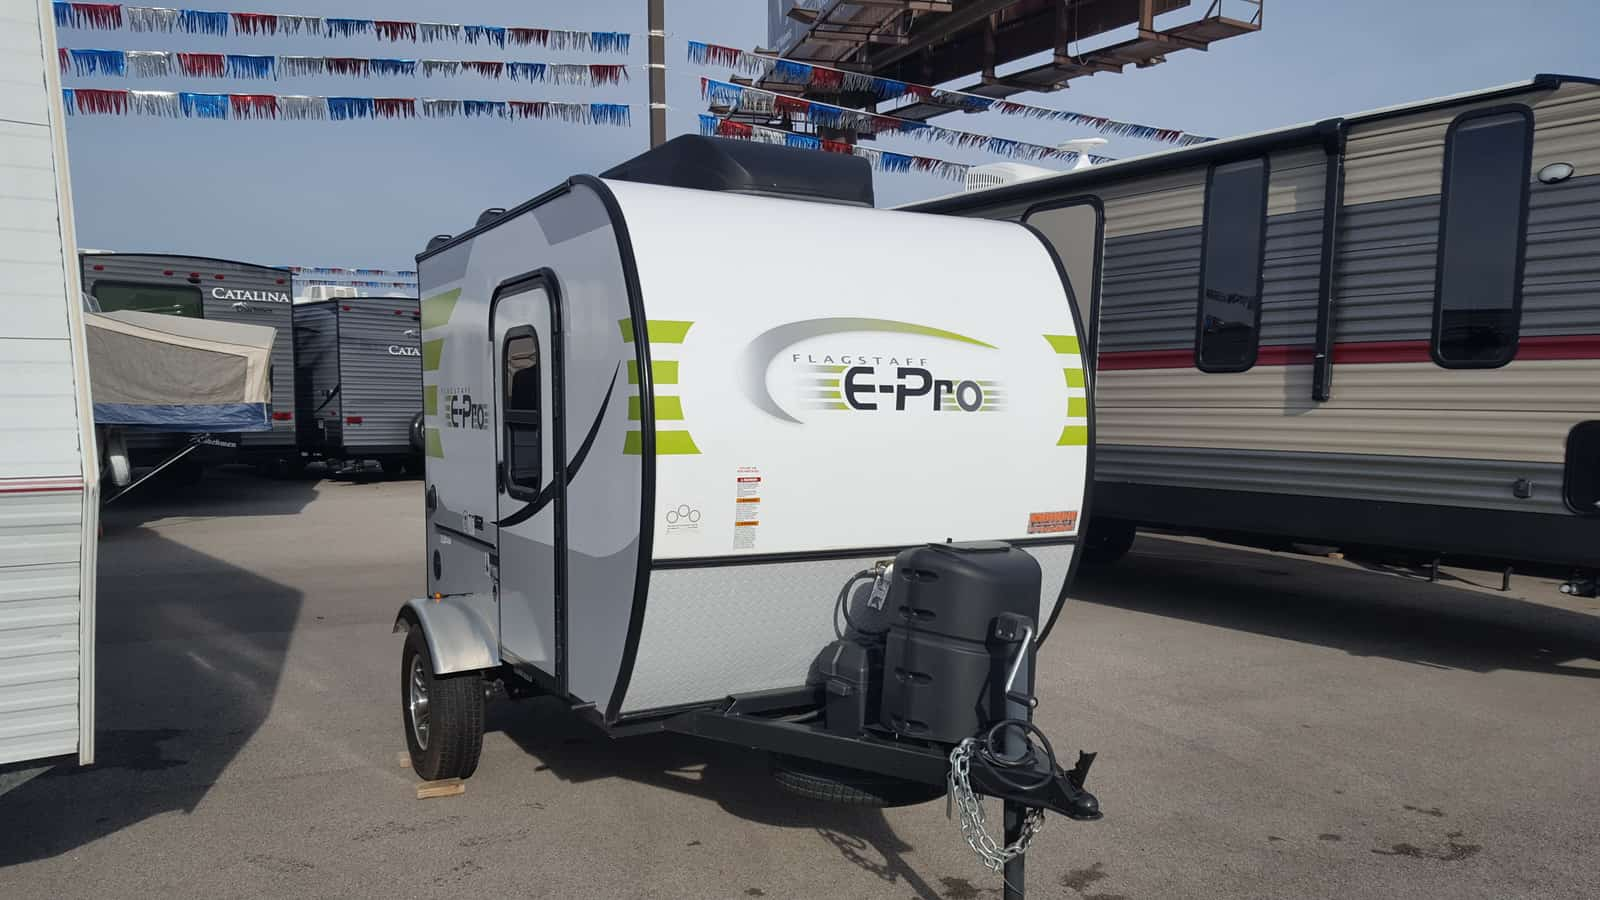 USED 2018 Forest River FLAGSTAFF E-PRO 12RK - American RV